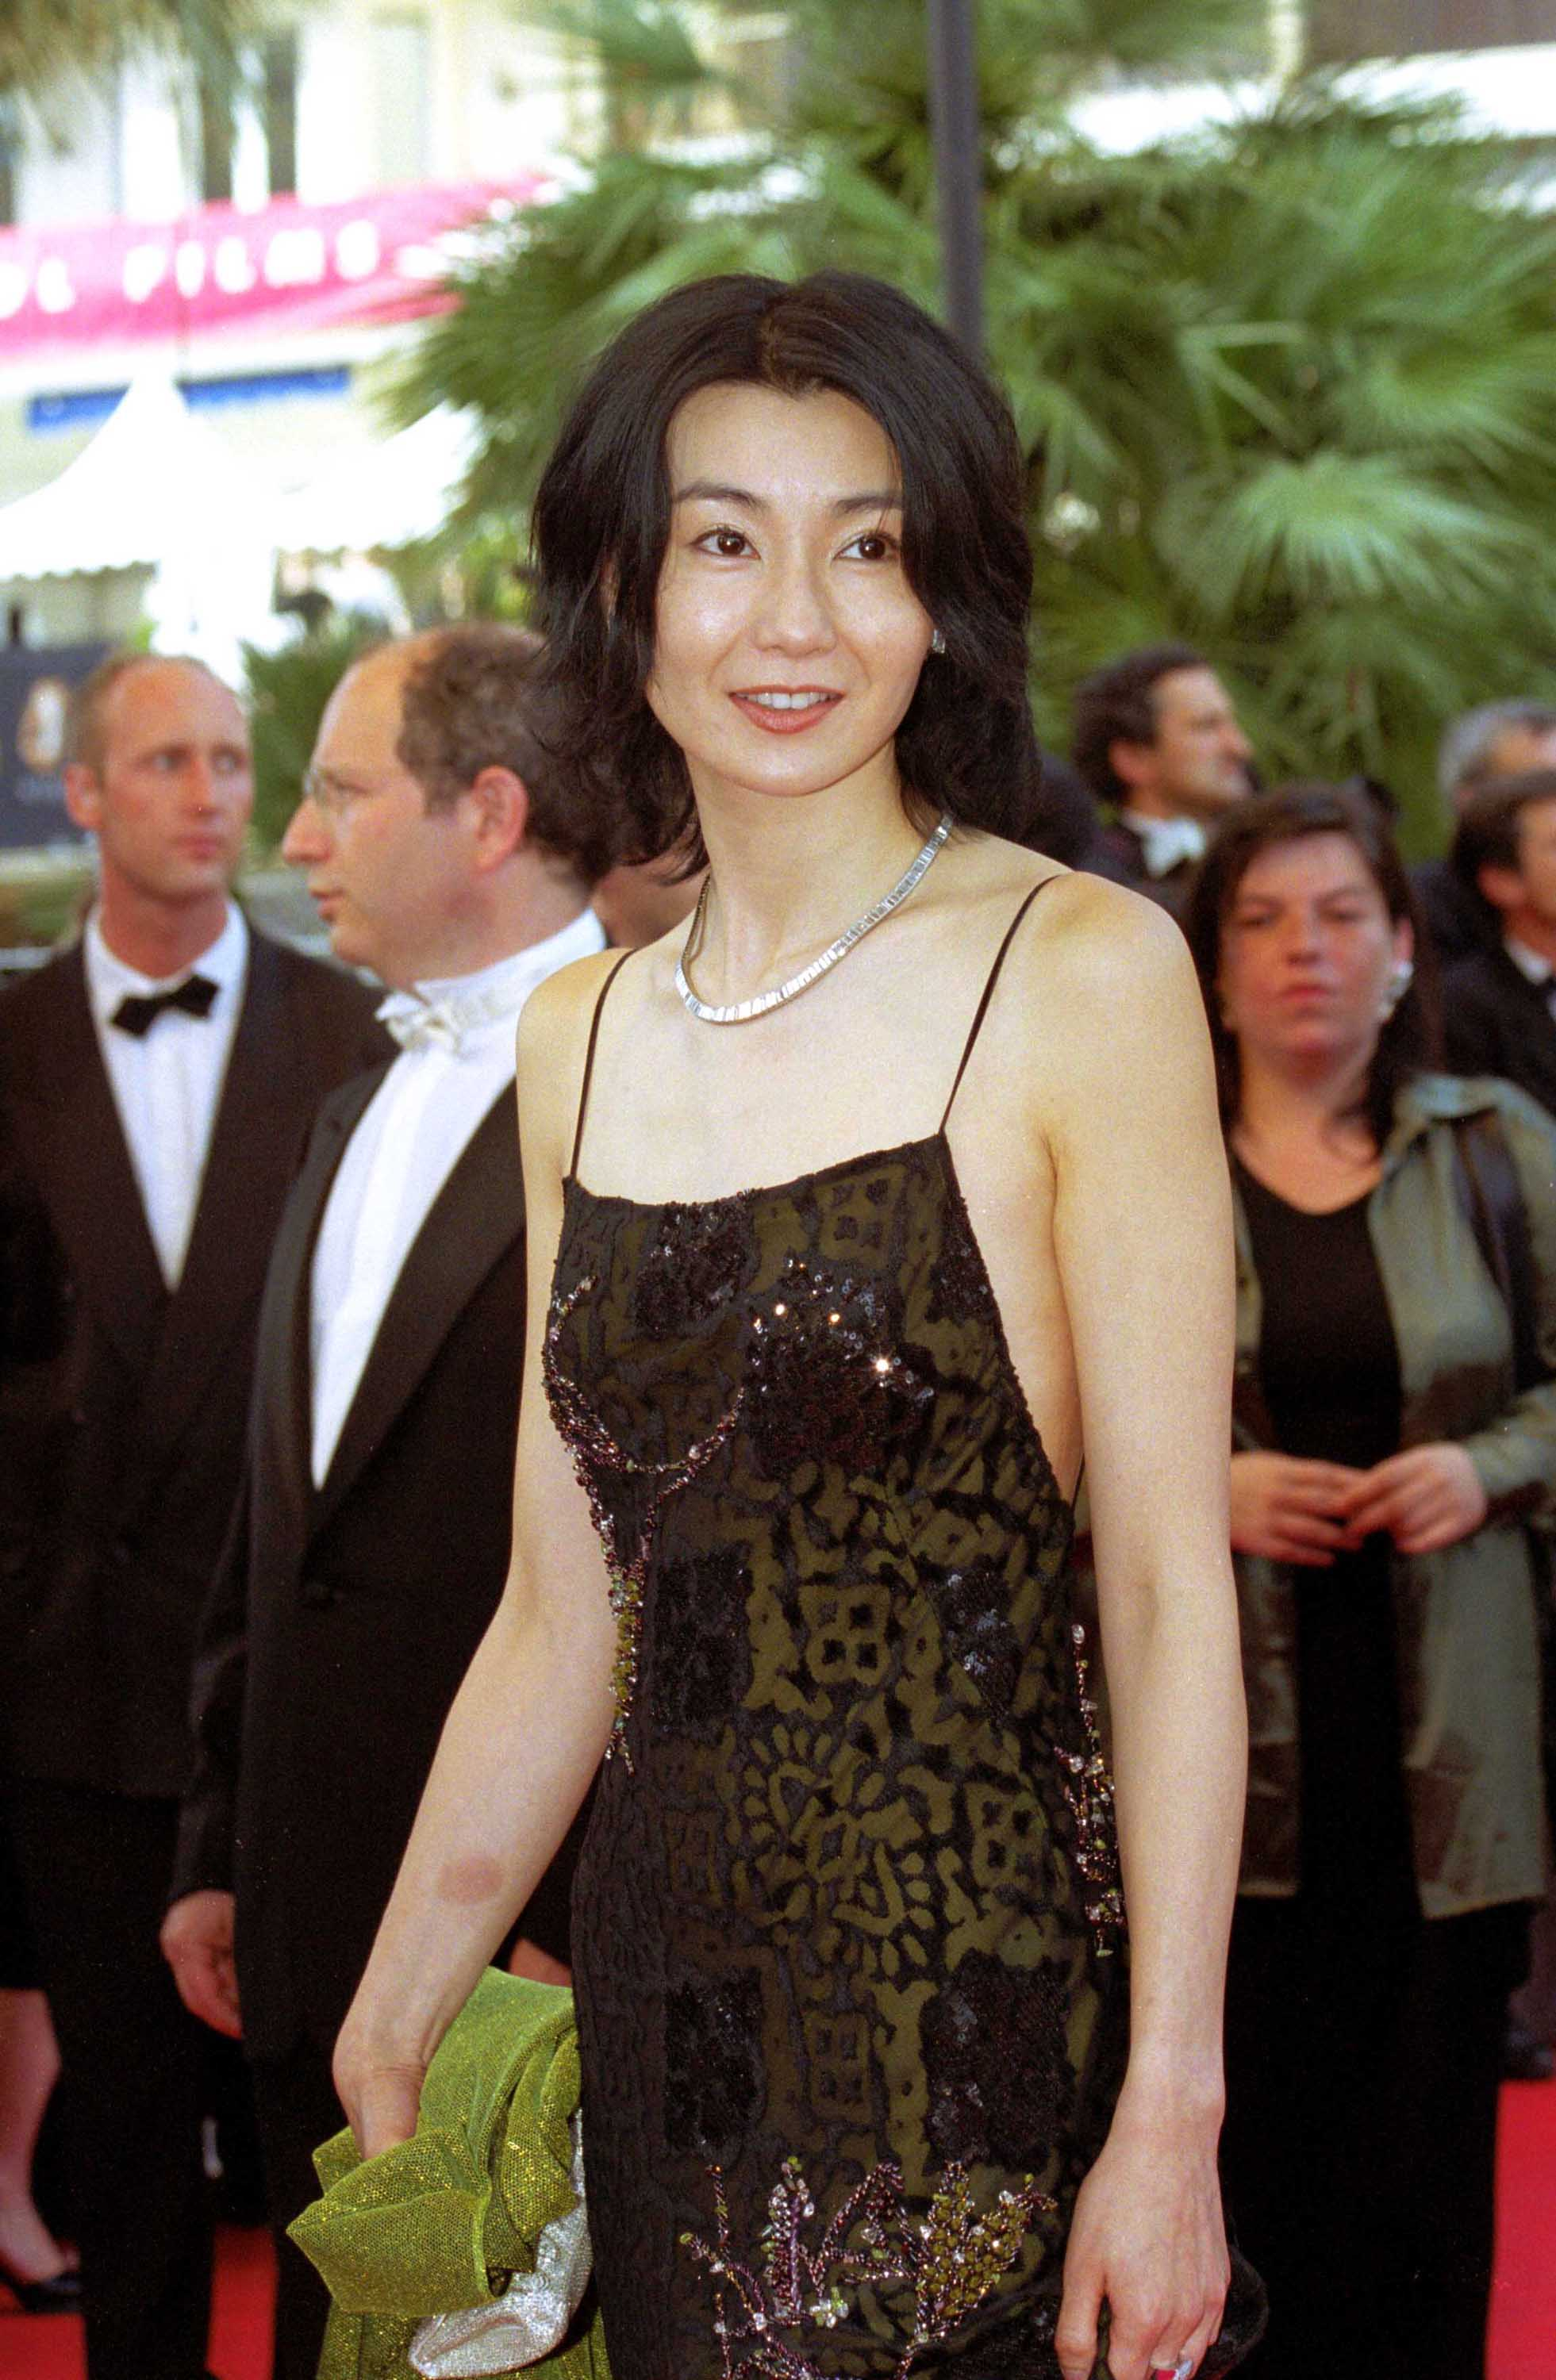 maggie cheung smiling on the red carpet at cannes film festival